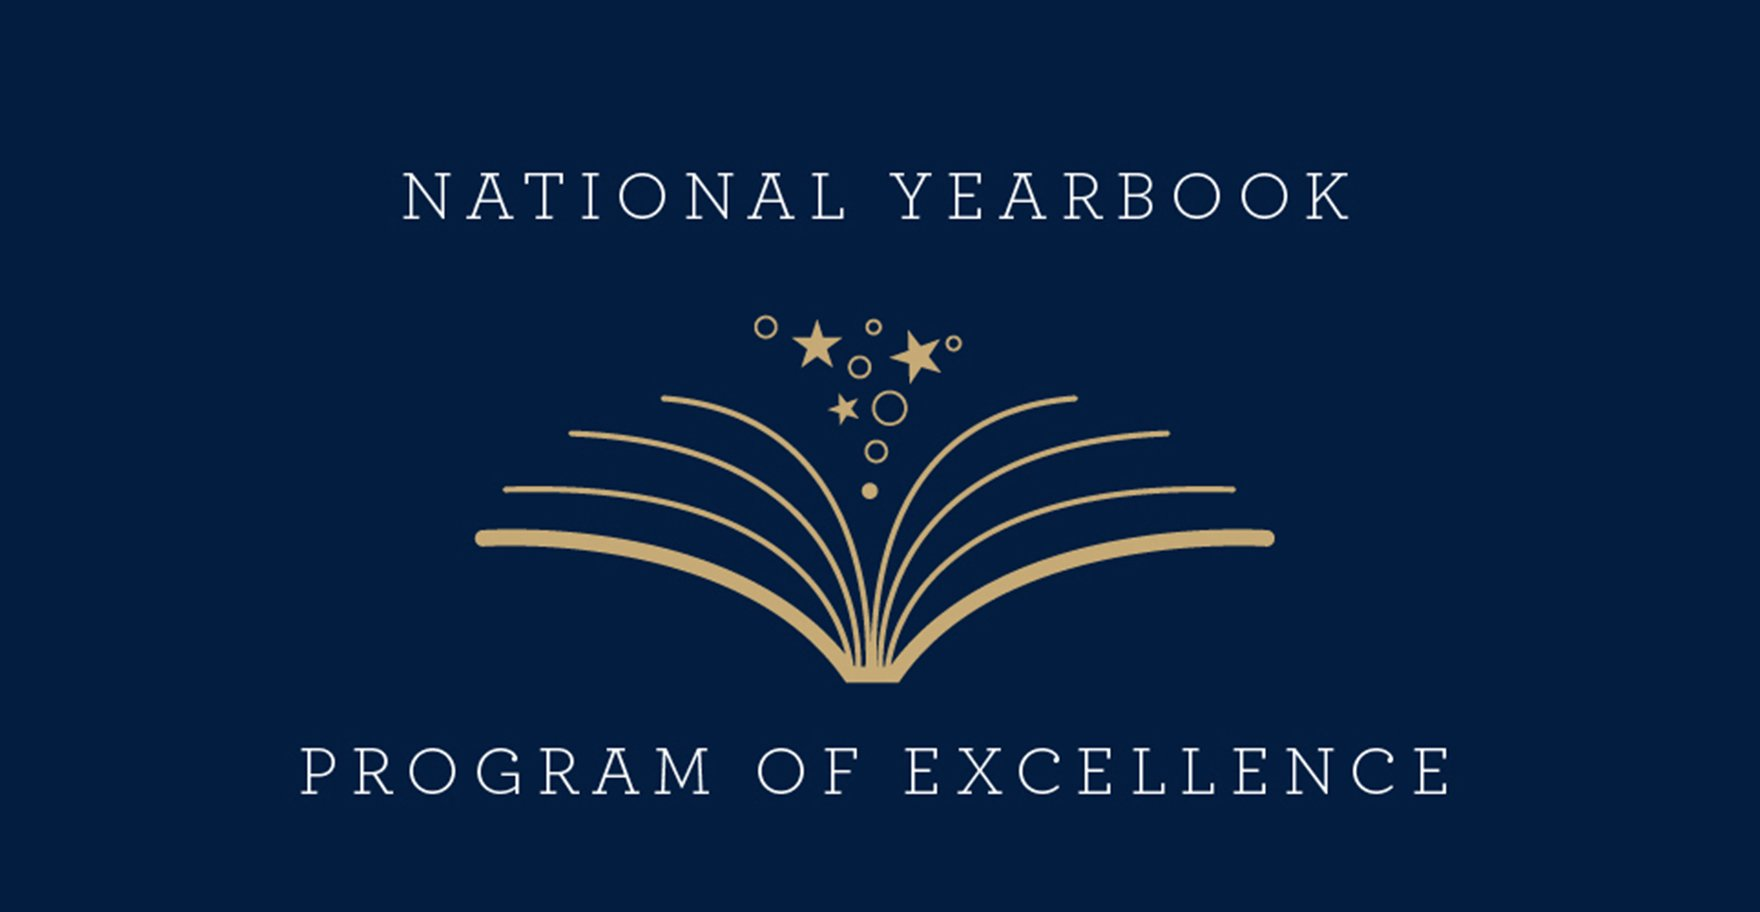 National Yearbook Program of Excellence